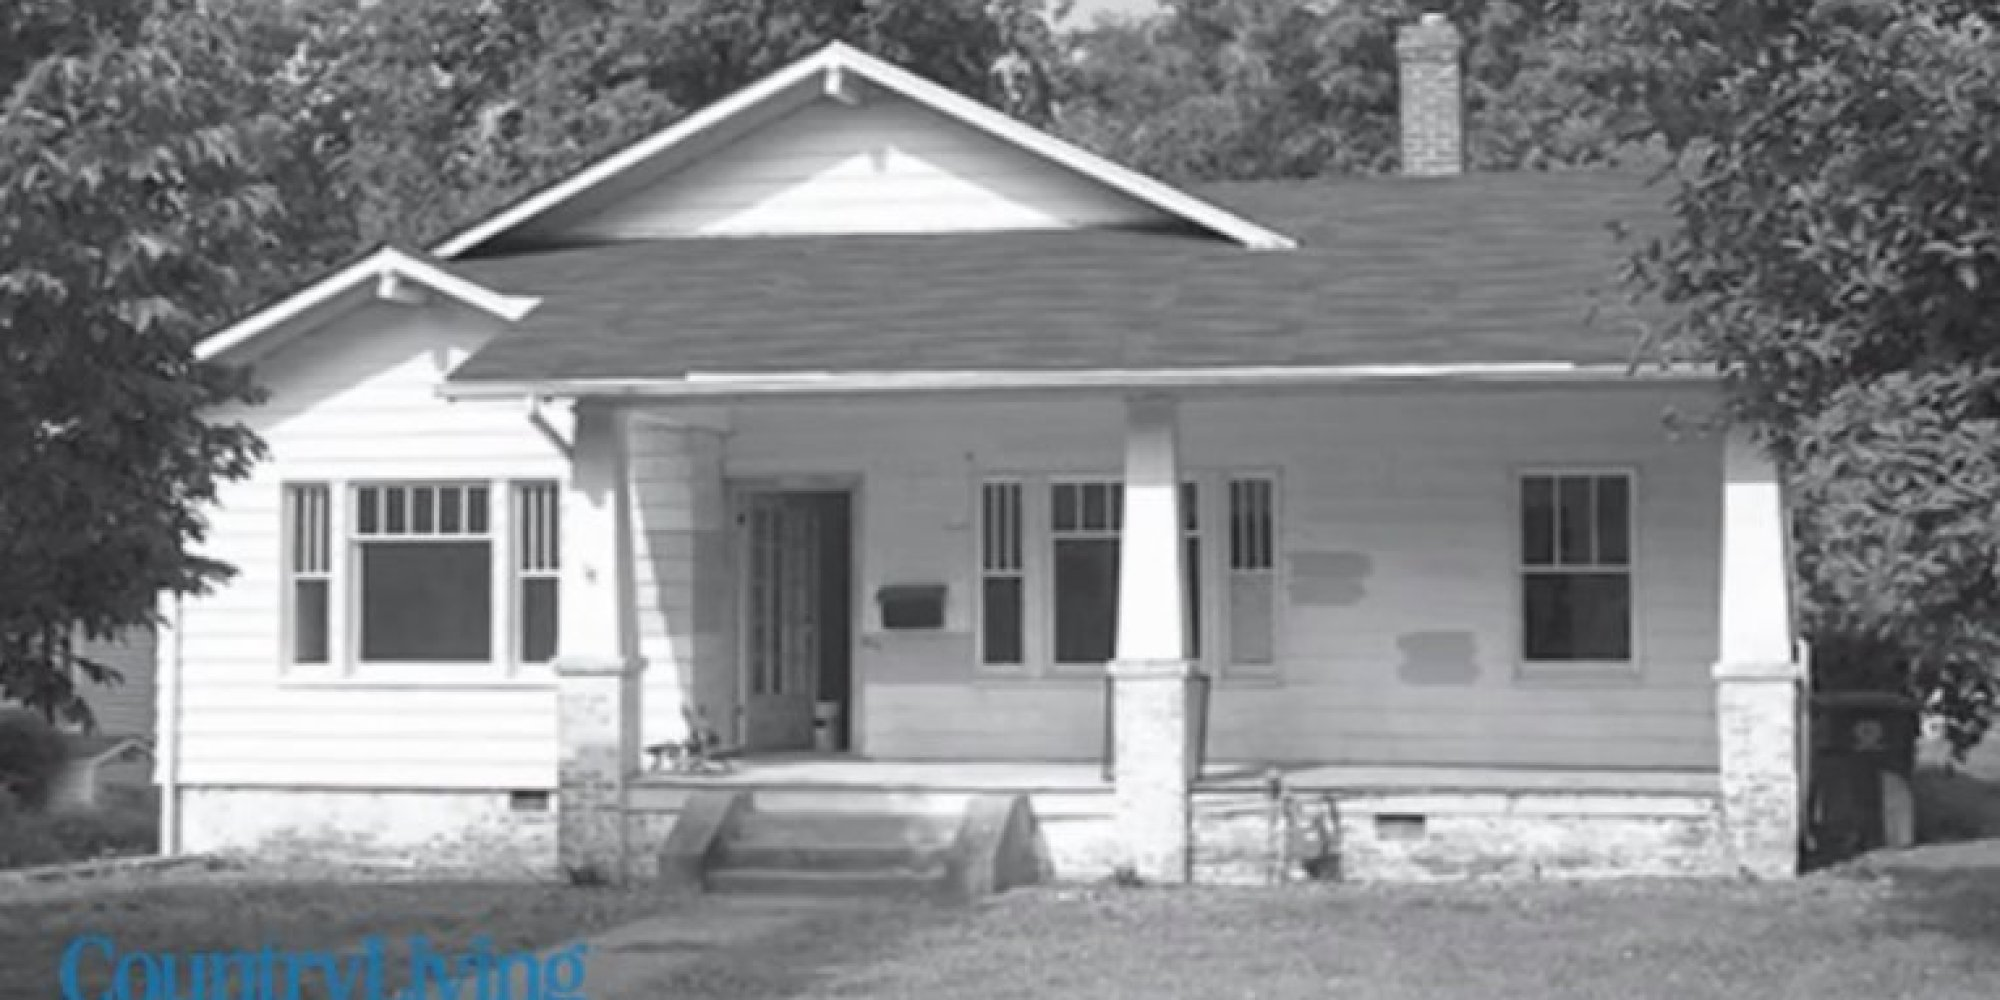 9 incredible exterior makeovers that gave old homes dramatic curb appeal huffpost - Exterior mobile home makeover ...